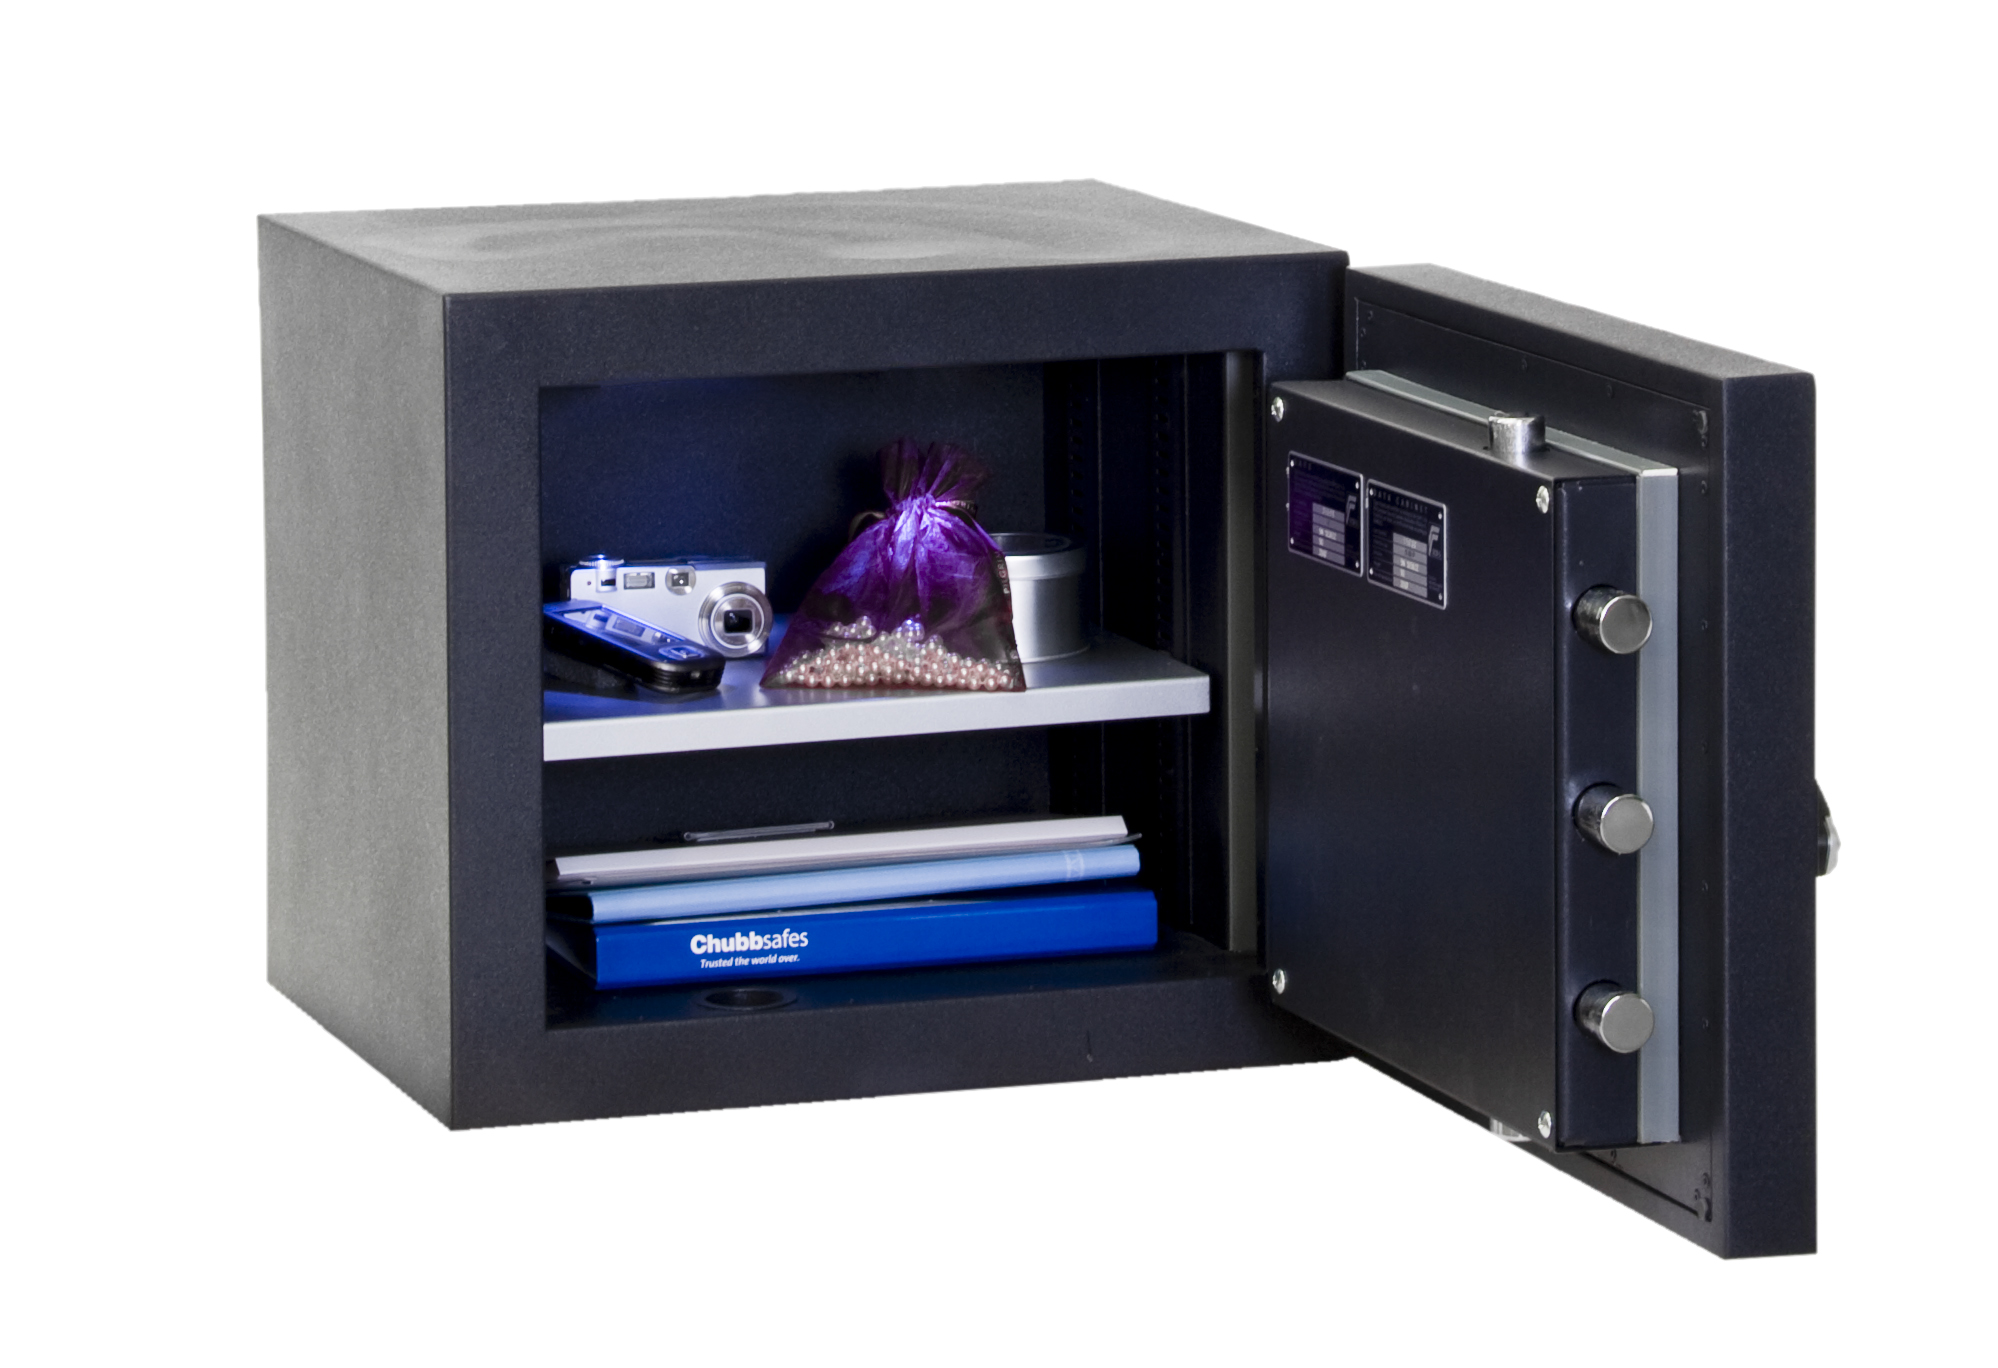 Chubbsafes Commercial Safes Duoguard 40